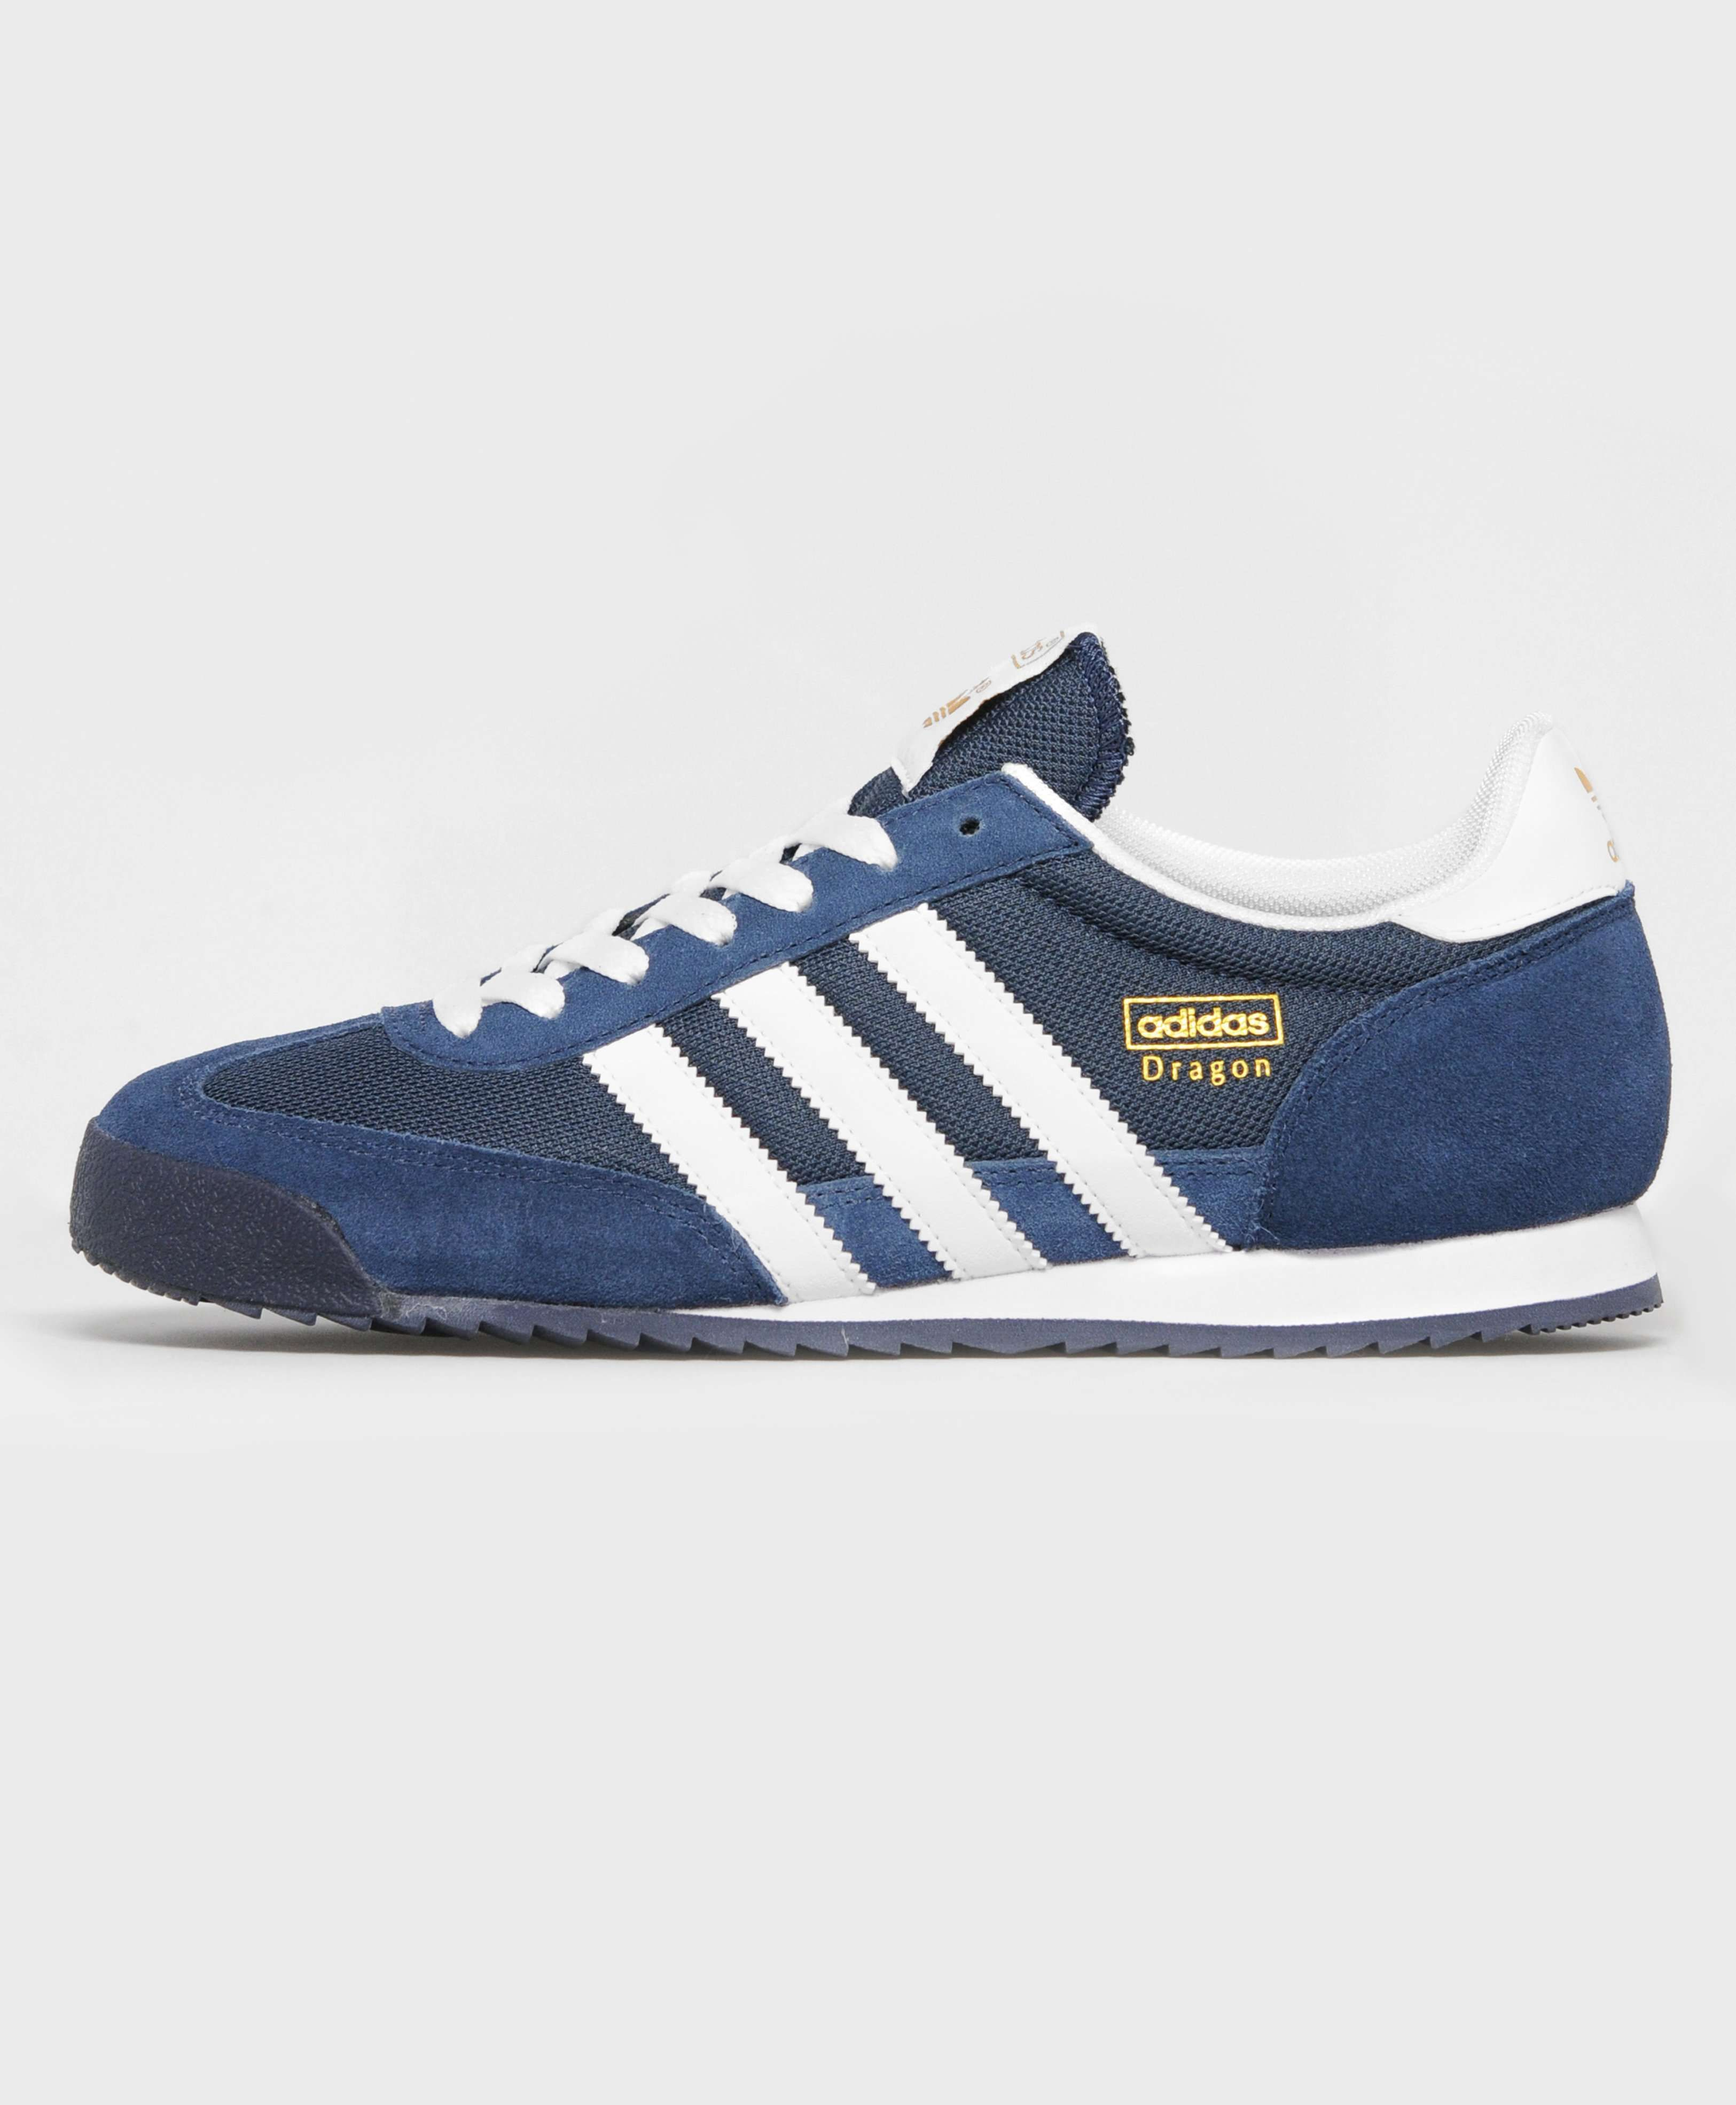 cheap for discount ce892 c5ba8 adidas Originals Dragon - The Brand Authority, scotts Menswear, brings you  the latest clothing, footwear and accessories from top menswear brands.